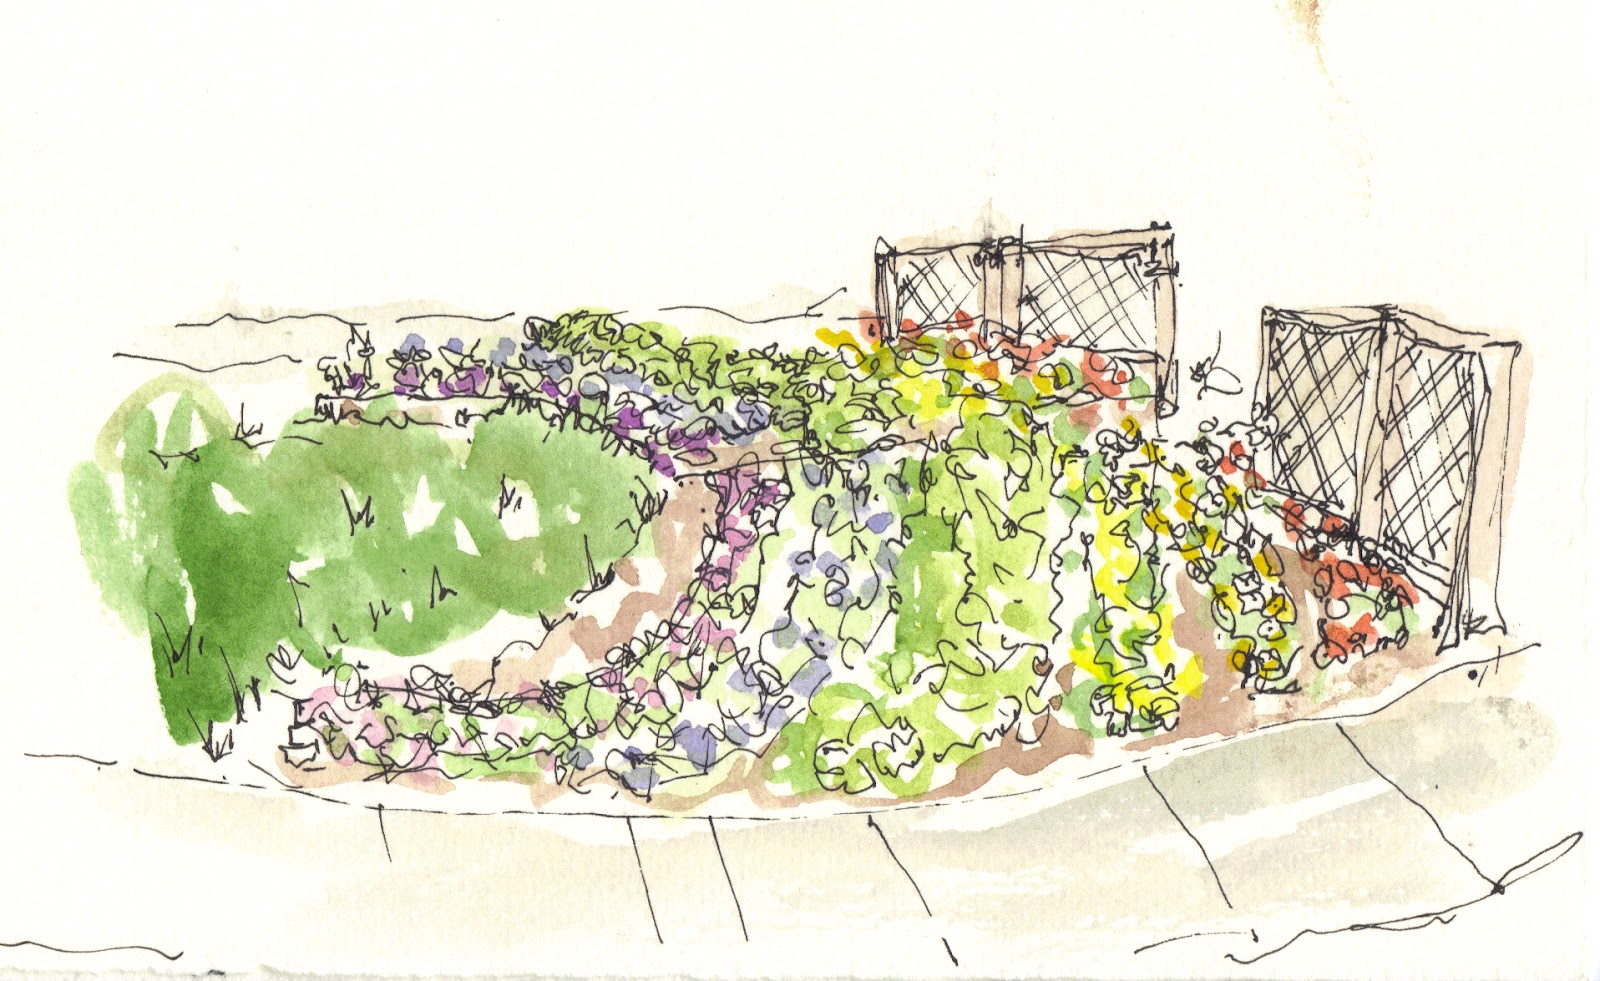 Flower garden sketch - I Forgot To Post One Sketch From The Children S Garden This Week This Is A Small Semi Circle Flower Garden With Pansies And Parsley In It